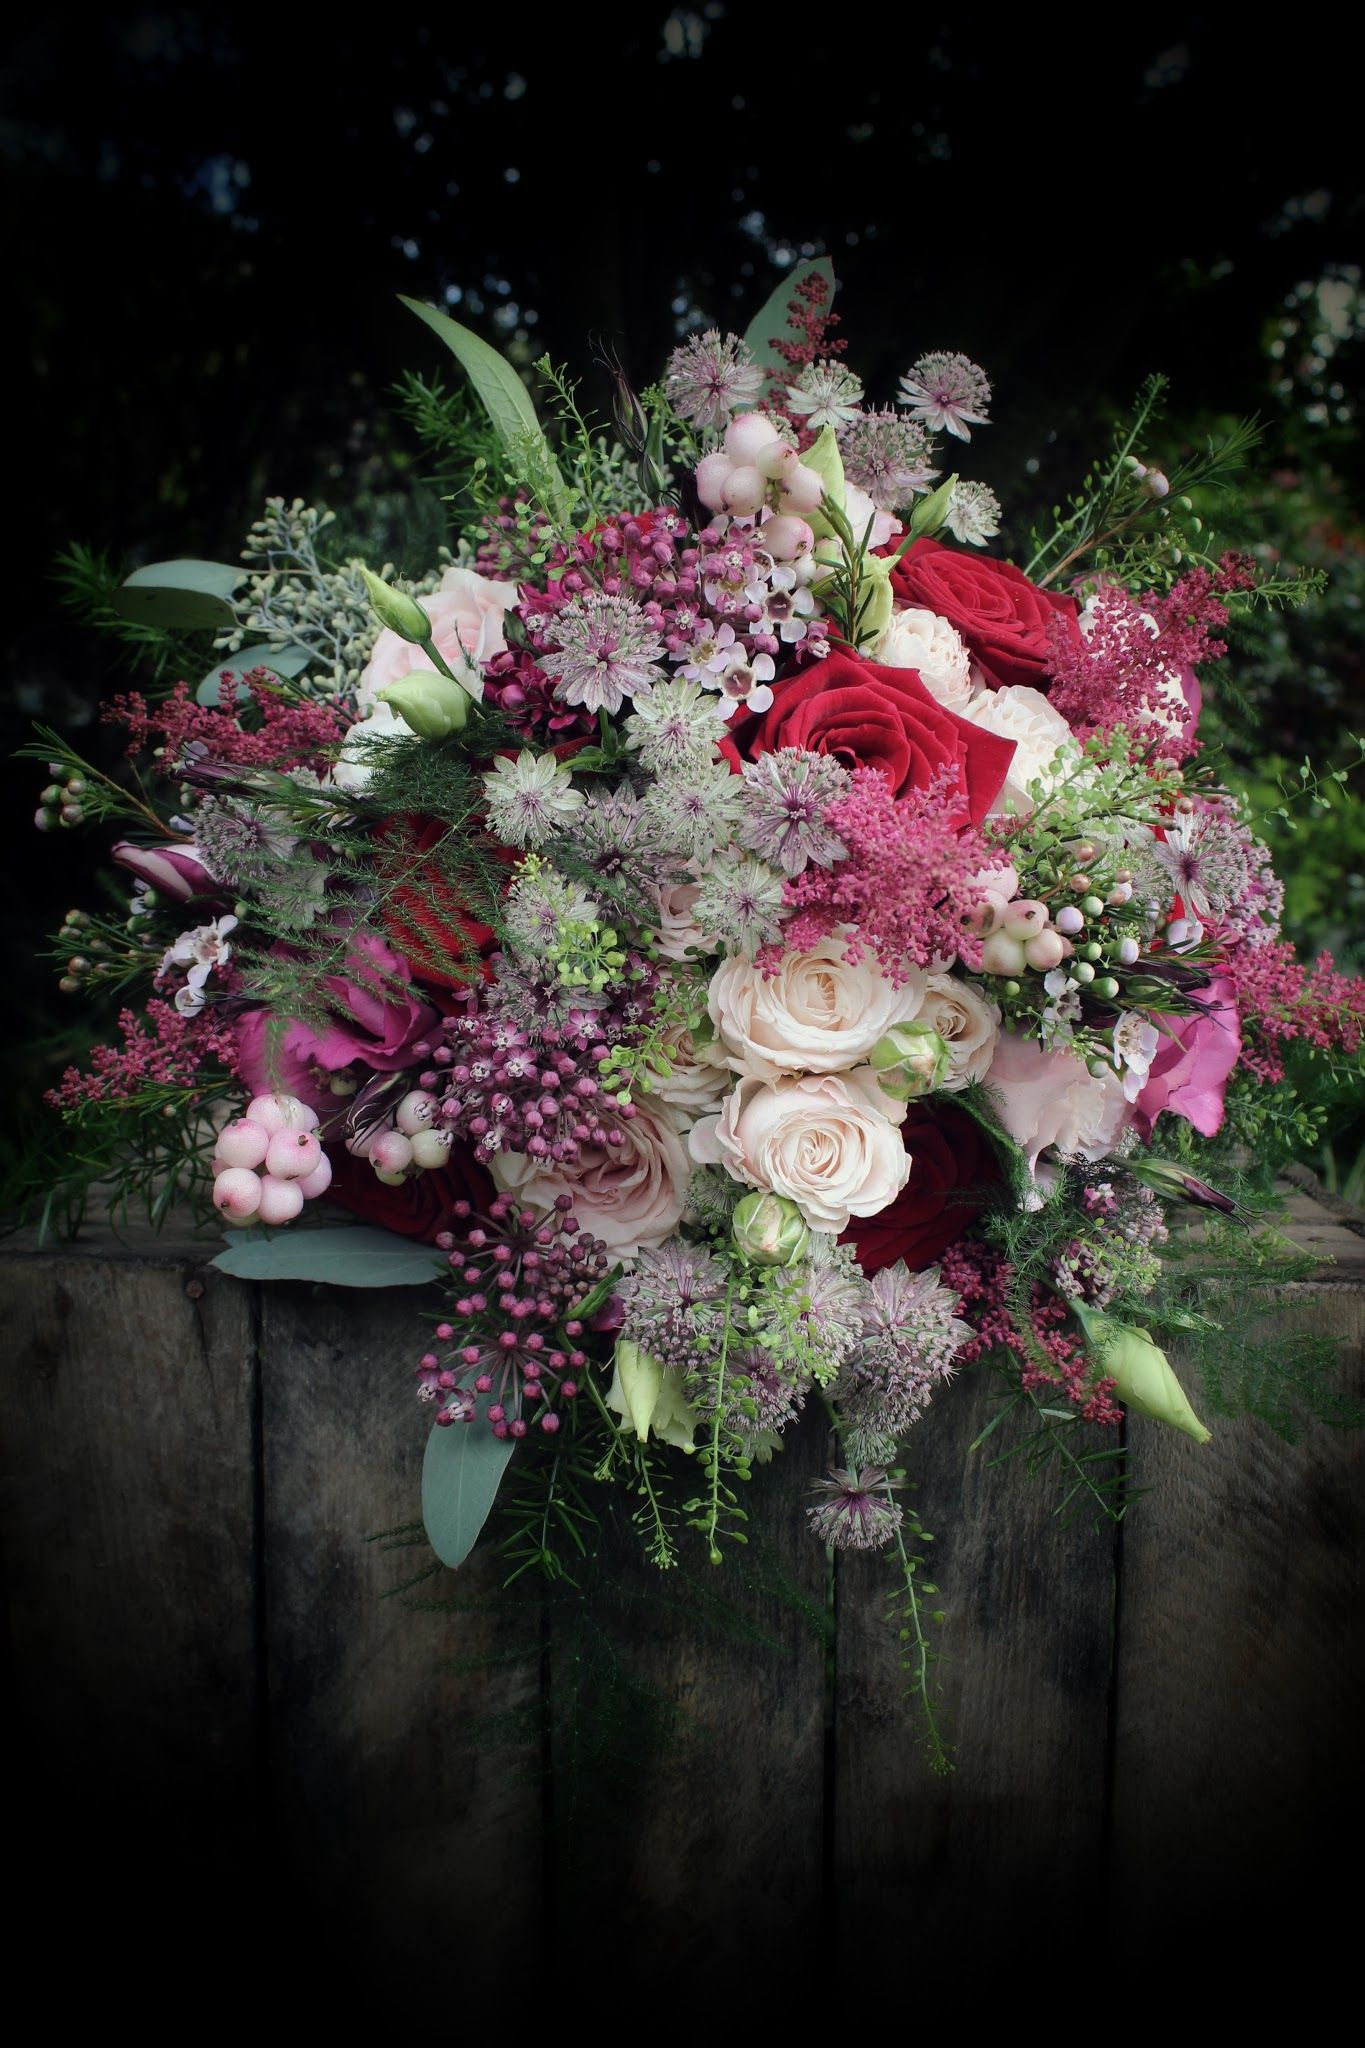 Berry red bouquet. Grand Prix Roses, Bombastic Spray Roses, Astrantia, Lisianthus, Astilbe & Snowberries